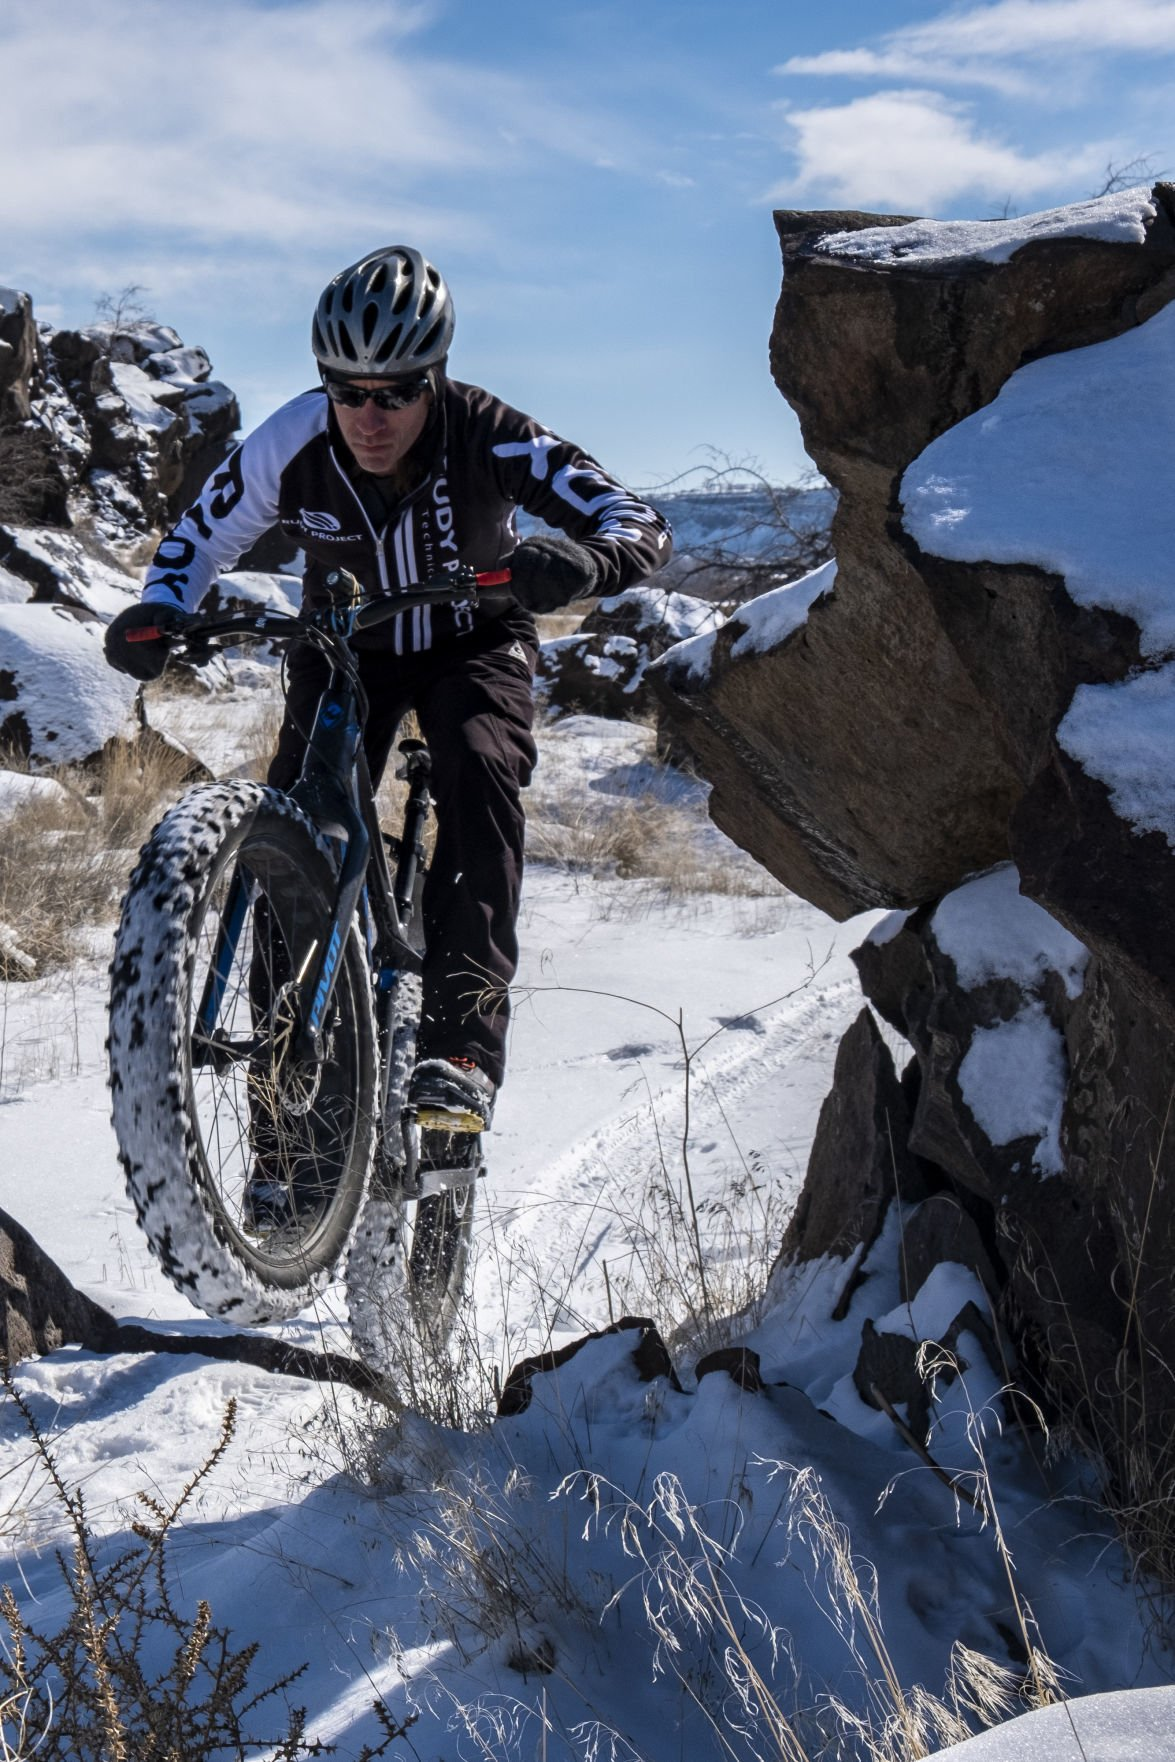 Auger Falls fat bike day